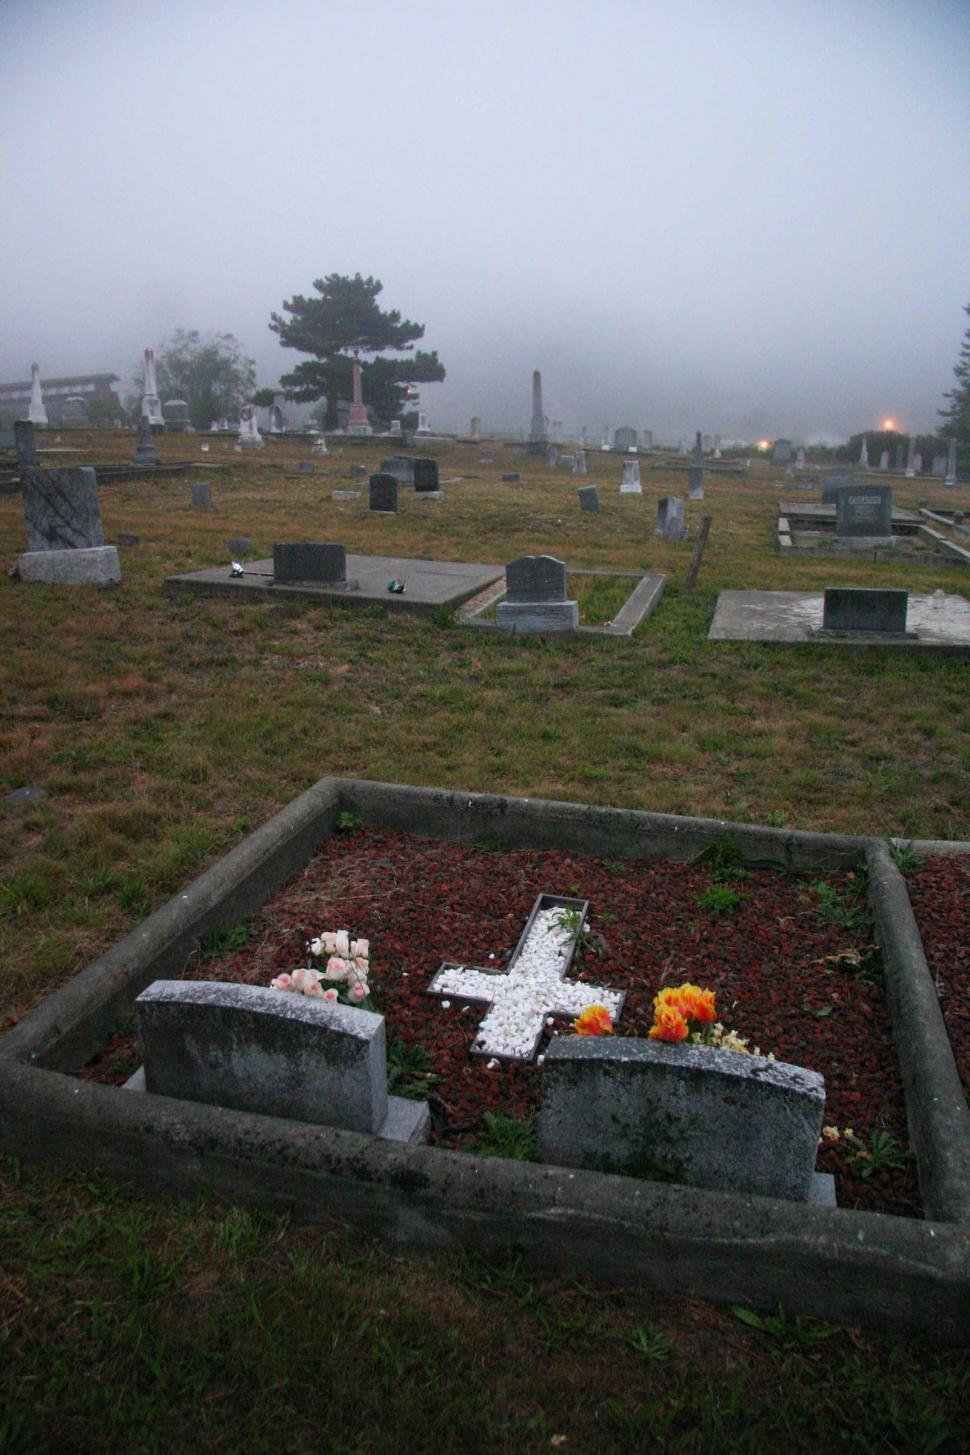 Download Free Stock HD Photo of Burial plots Online